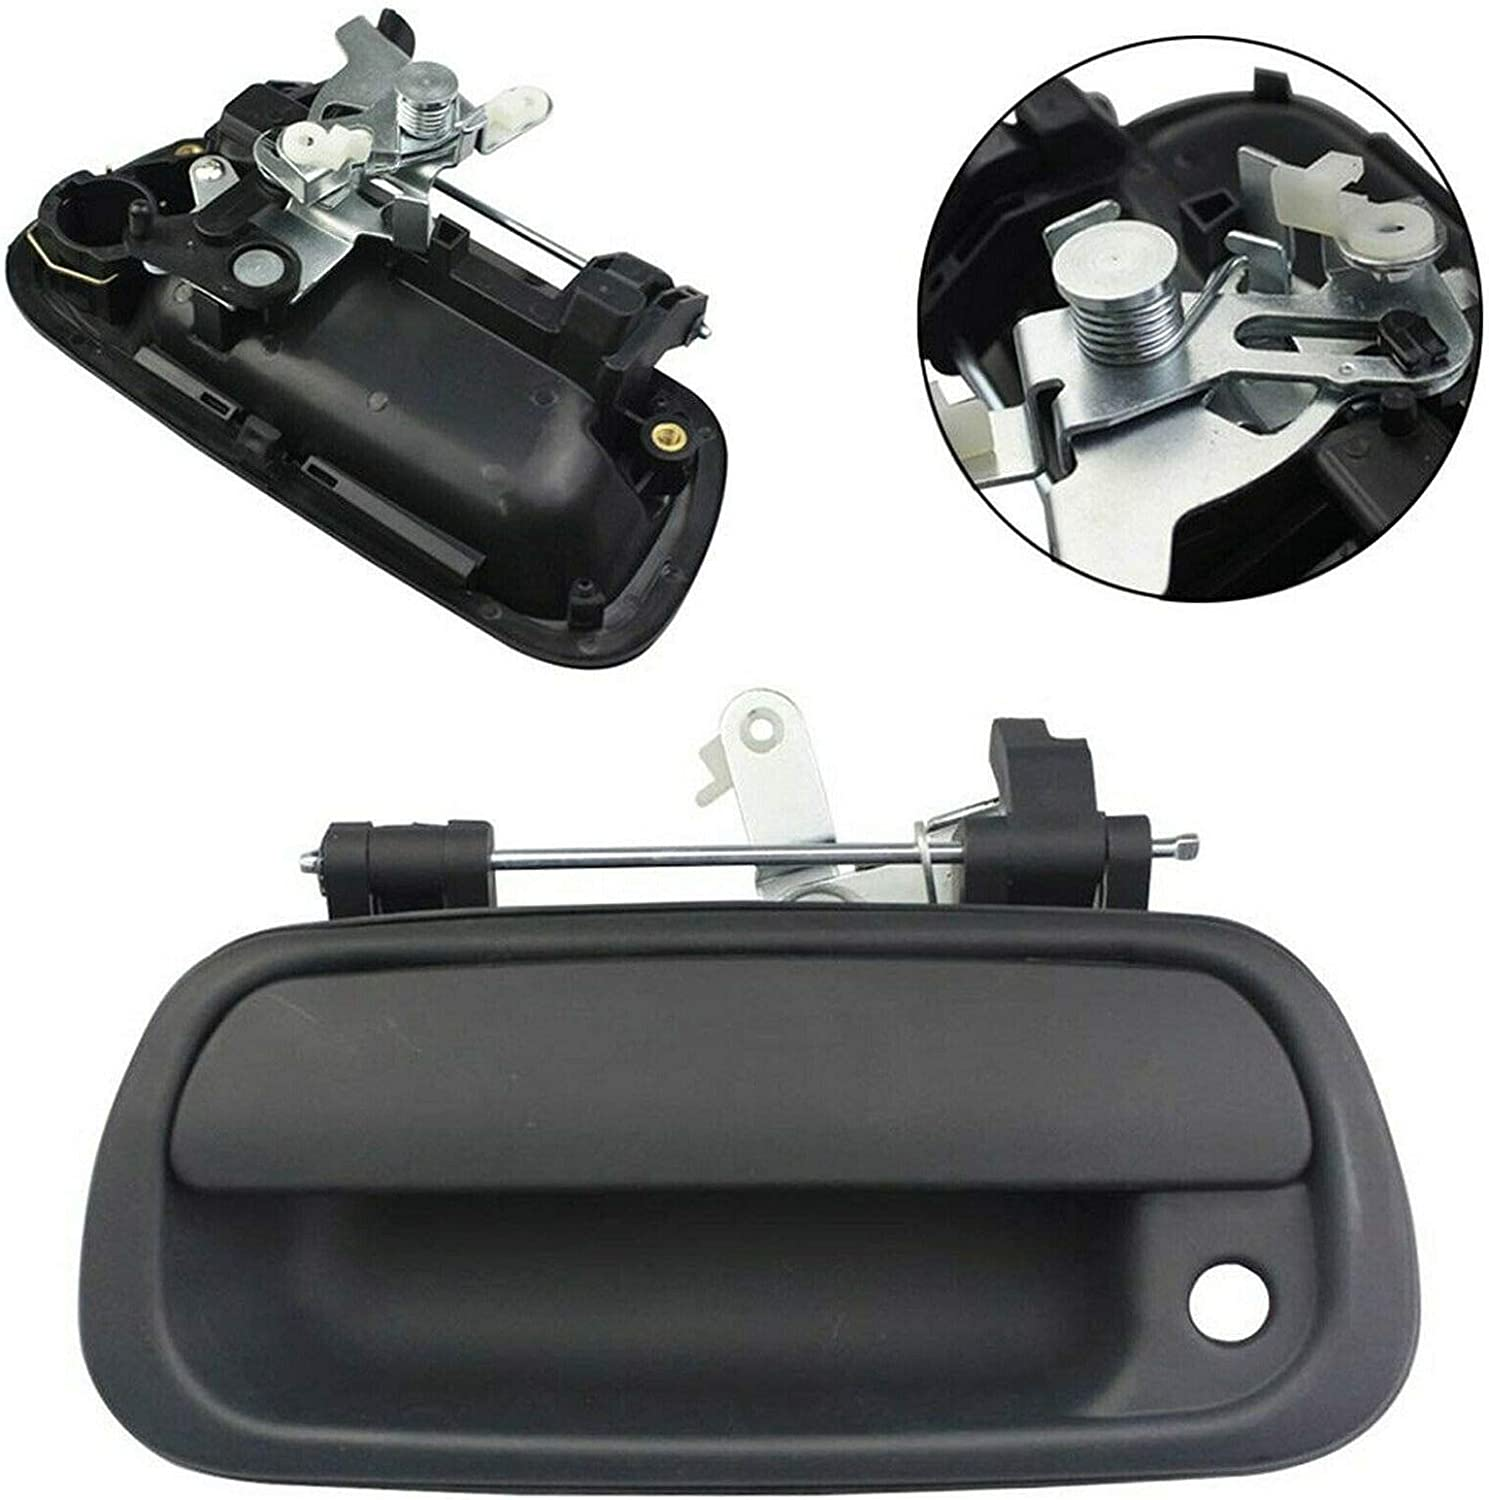 Tail Gate Tailgate Handle Black Rear 69090-0C010 For Toyota Tundra Pickup Truck